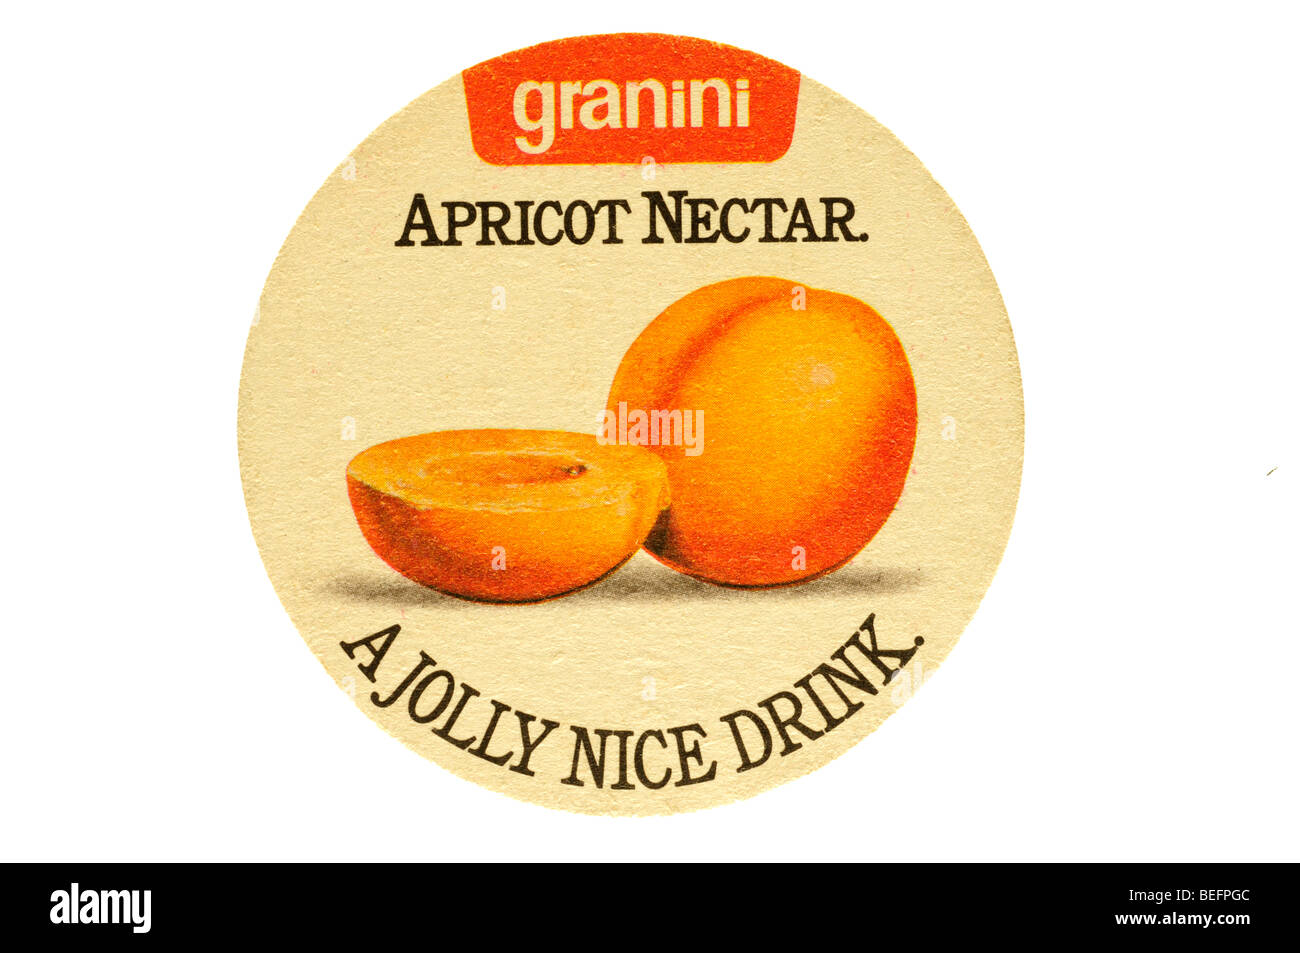 granini apricot nectar a jolly nice drink - Stock Image